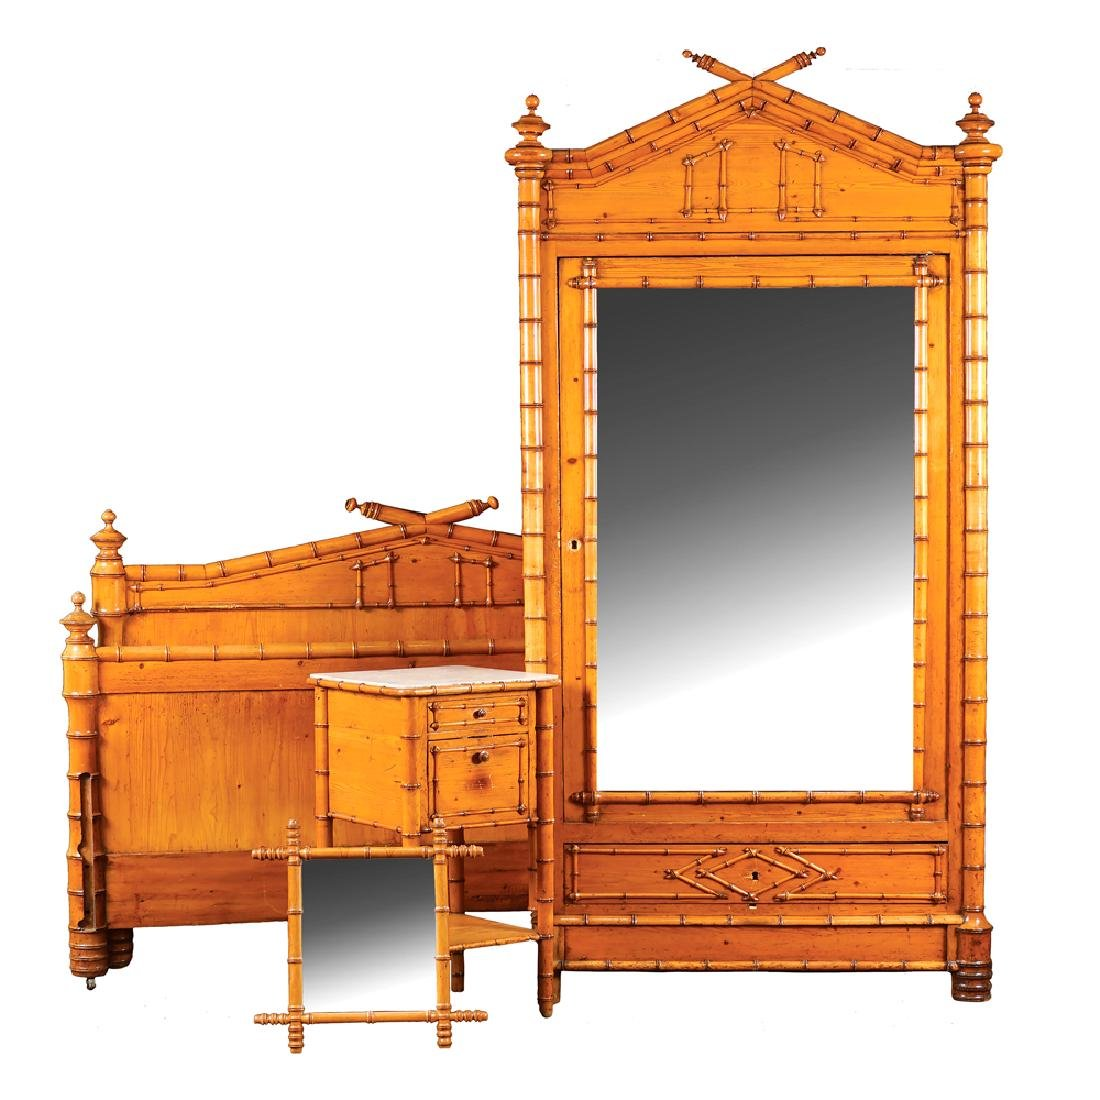 Fir wood and bambù— bedroom France early 20th century